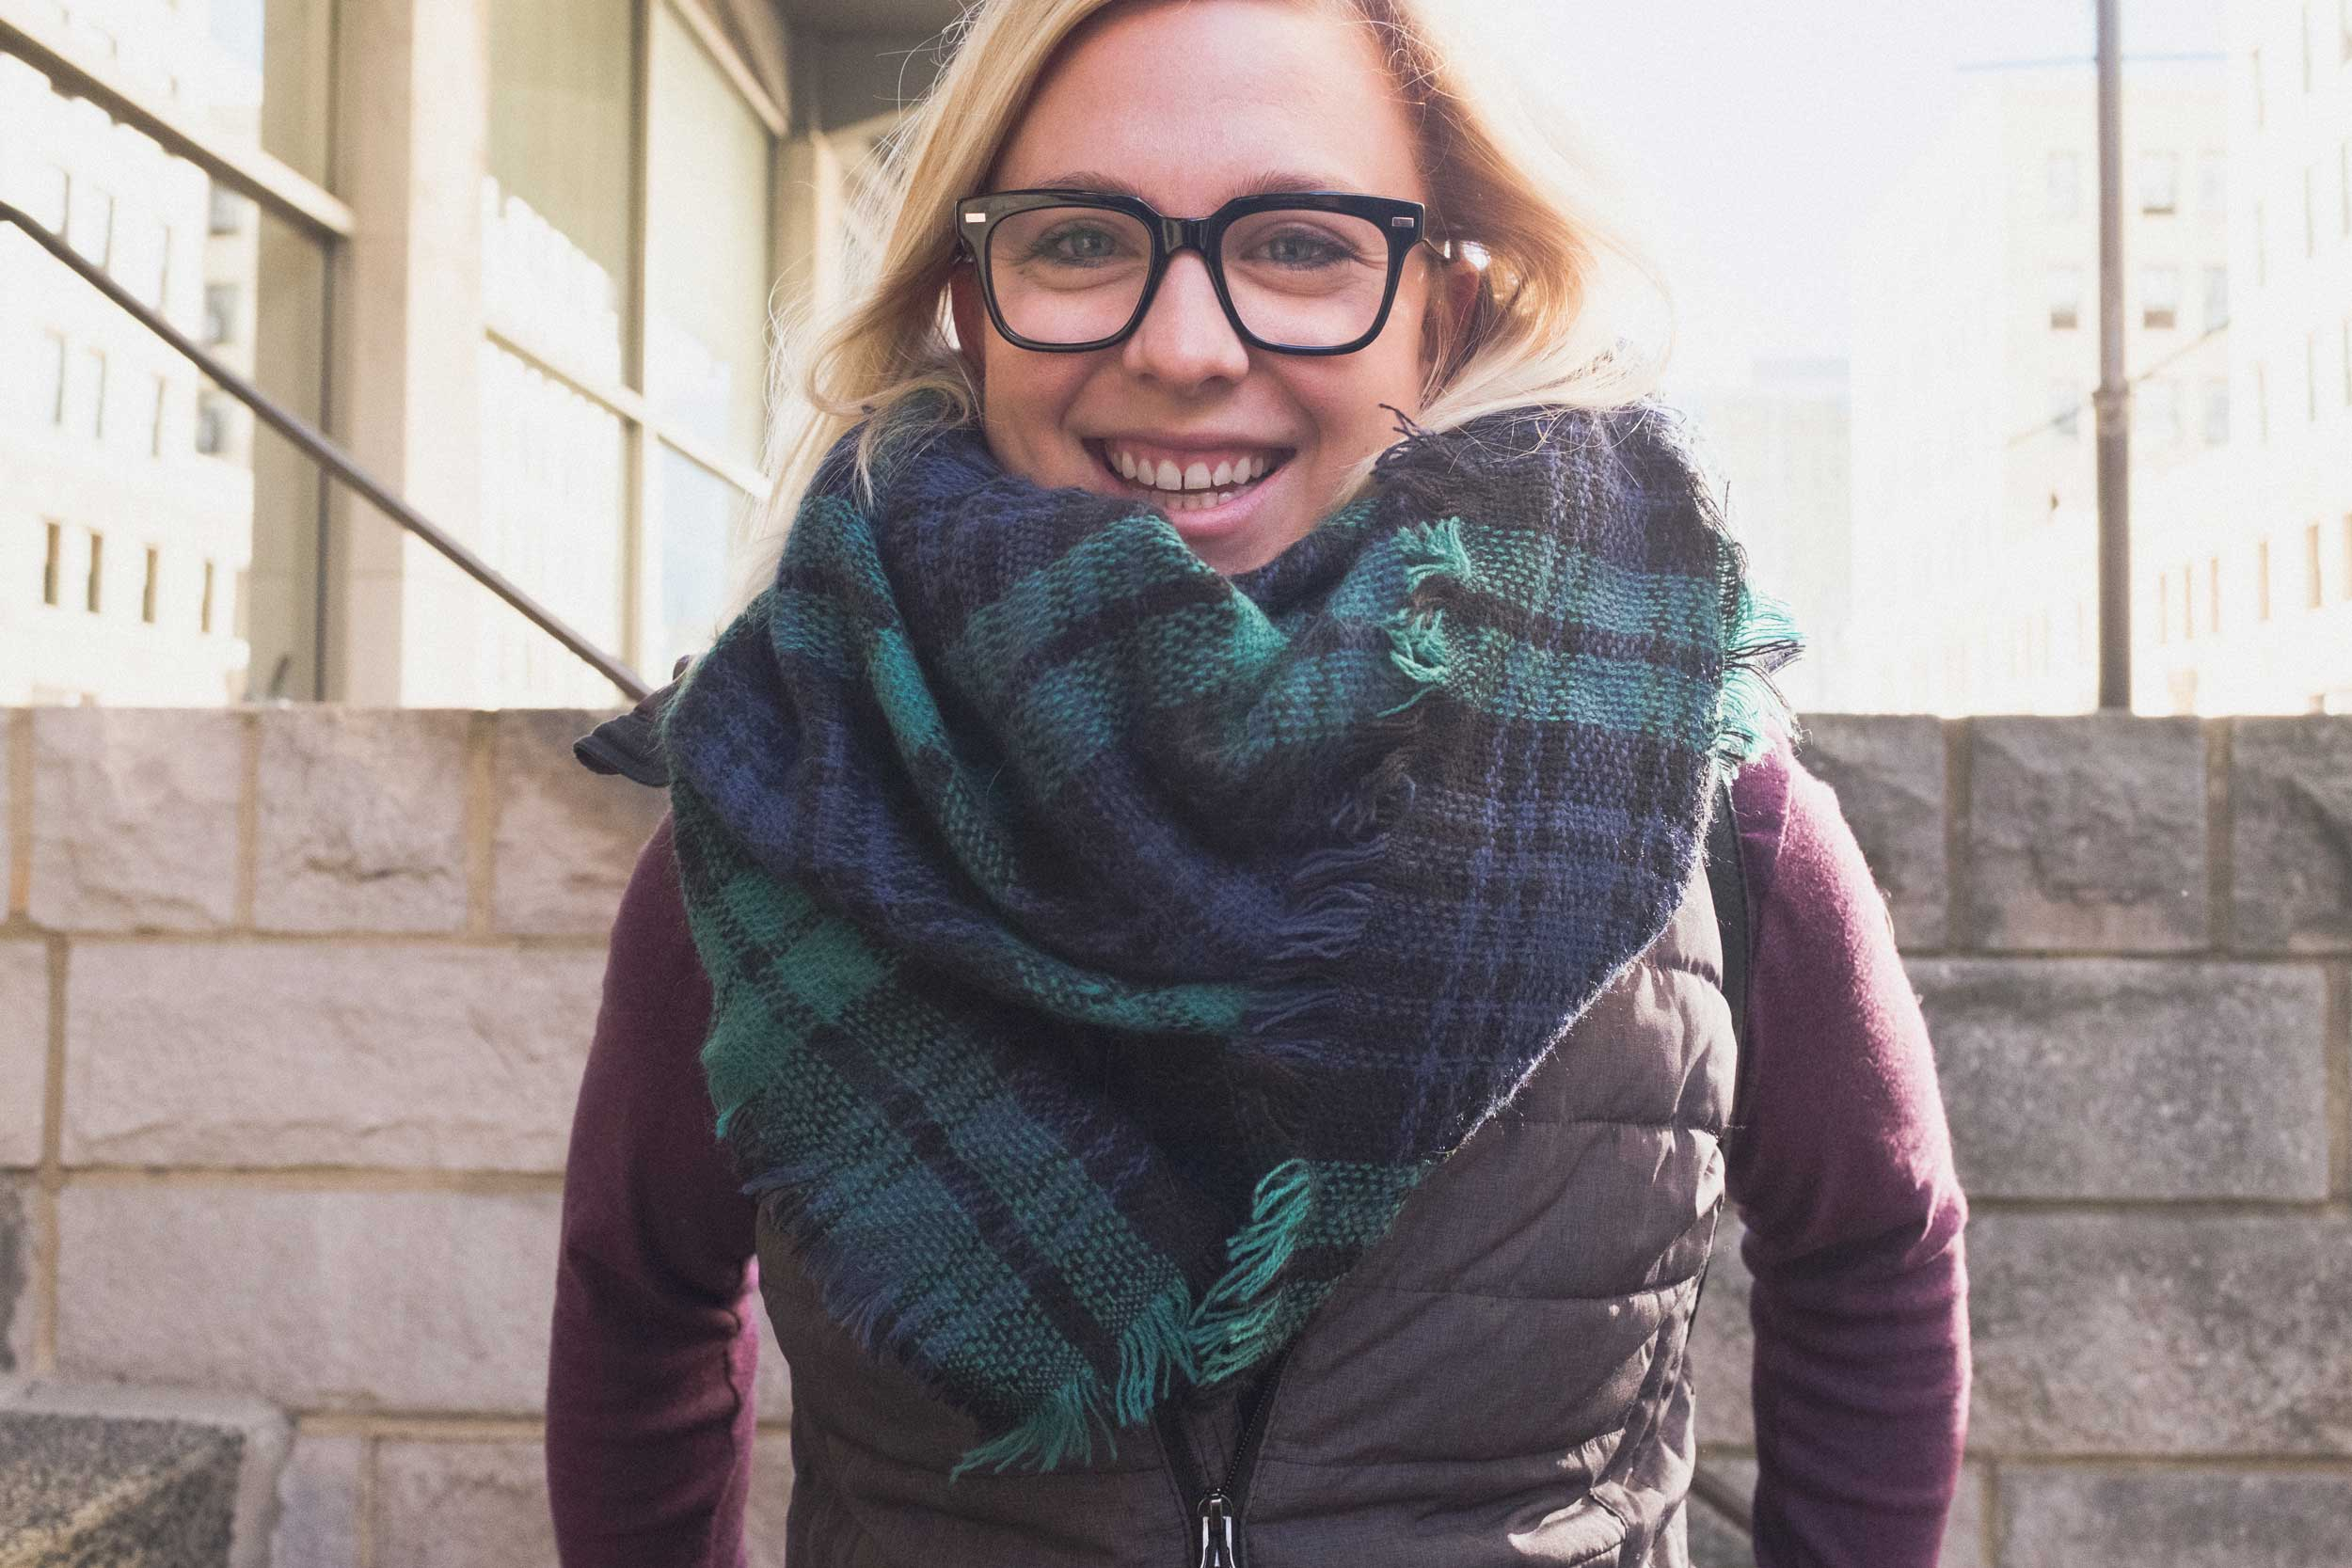 This is Charlotte. Her big scarf speaks volumes about how we feel about fall weather. She tried to make excuses about her penchant for Target clothing. But we care less about what brand it is, and more about how it makes her feel. And it looks like she feels great.